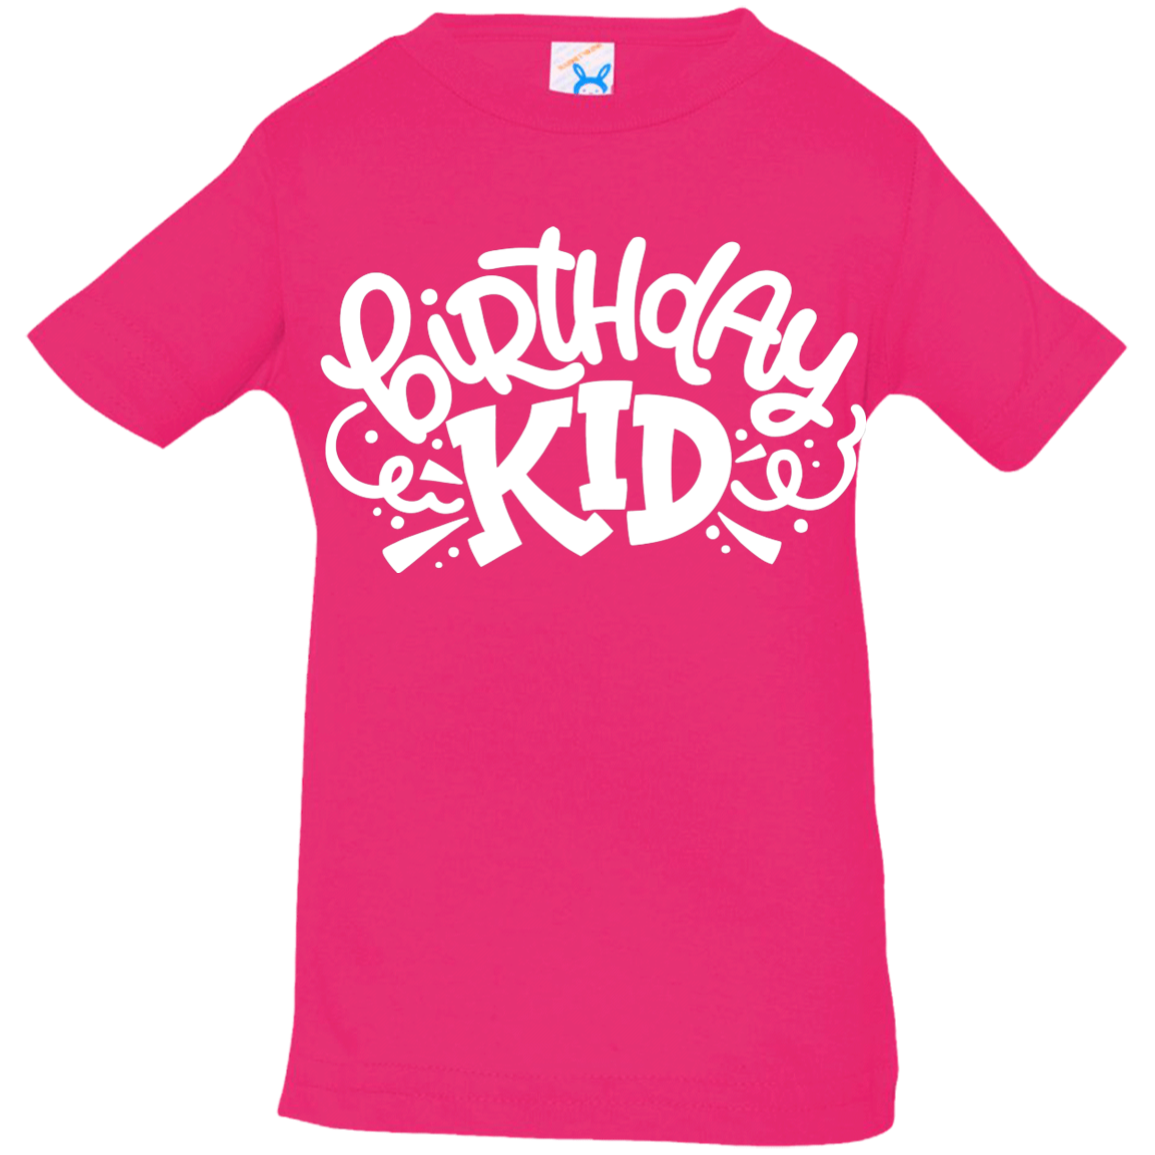 Birthday Kid Party T-Shirt